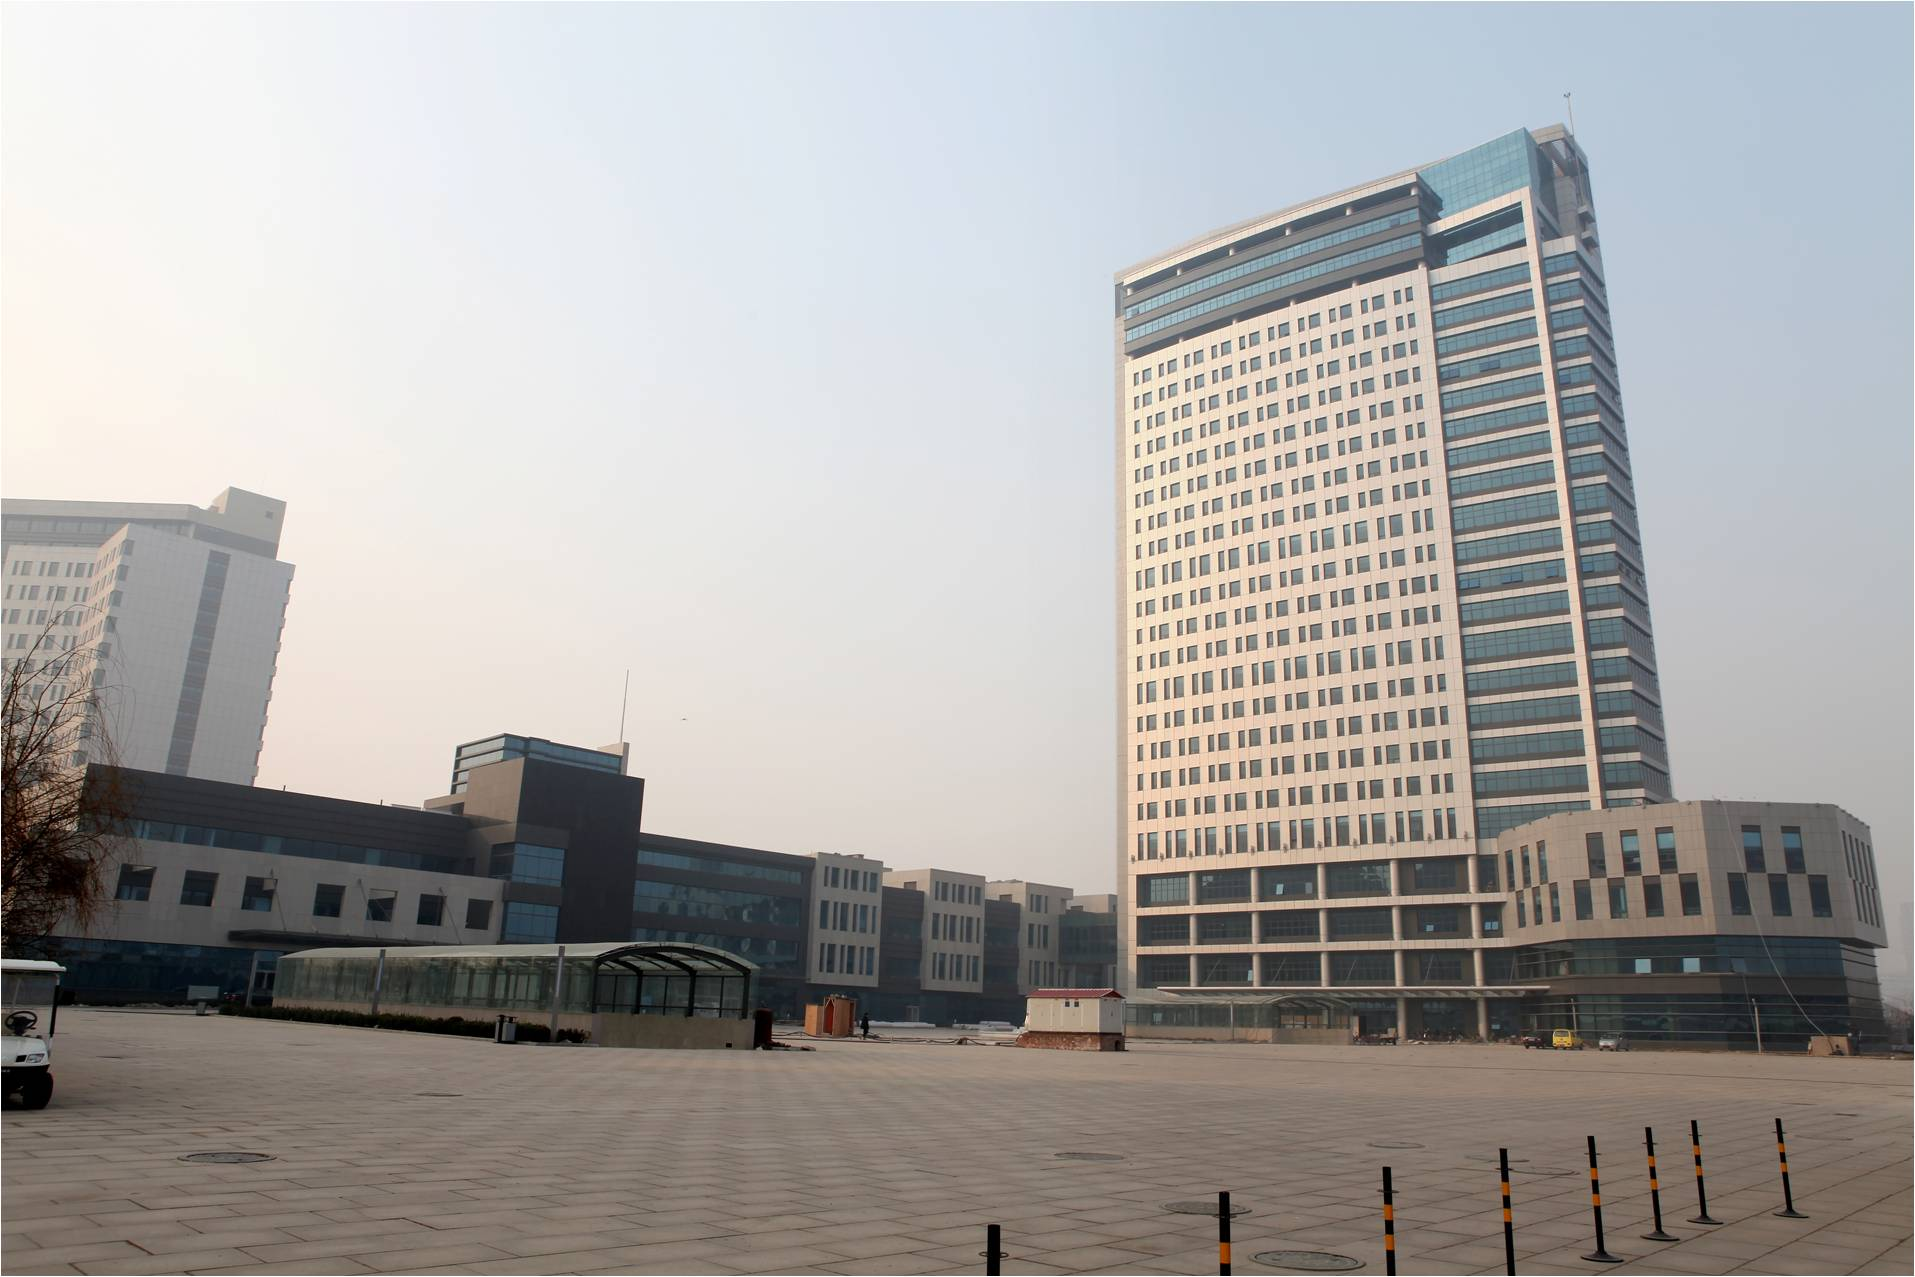 Yanjiao Hospital Outpatient Building